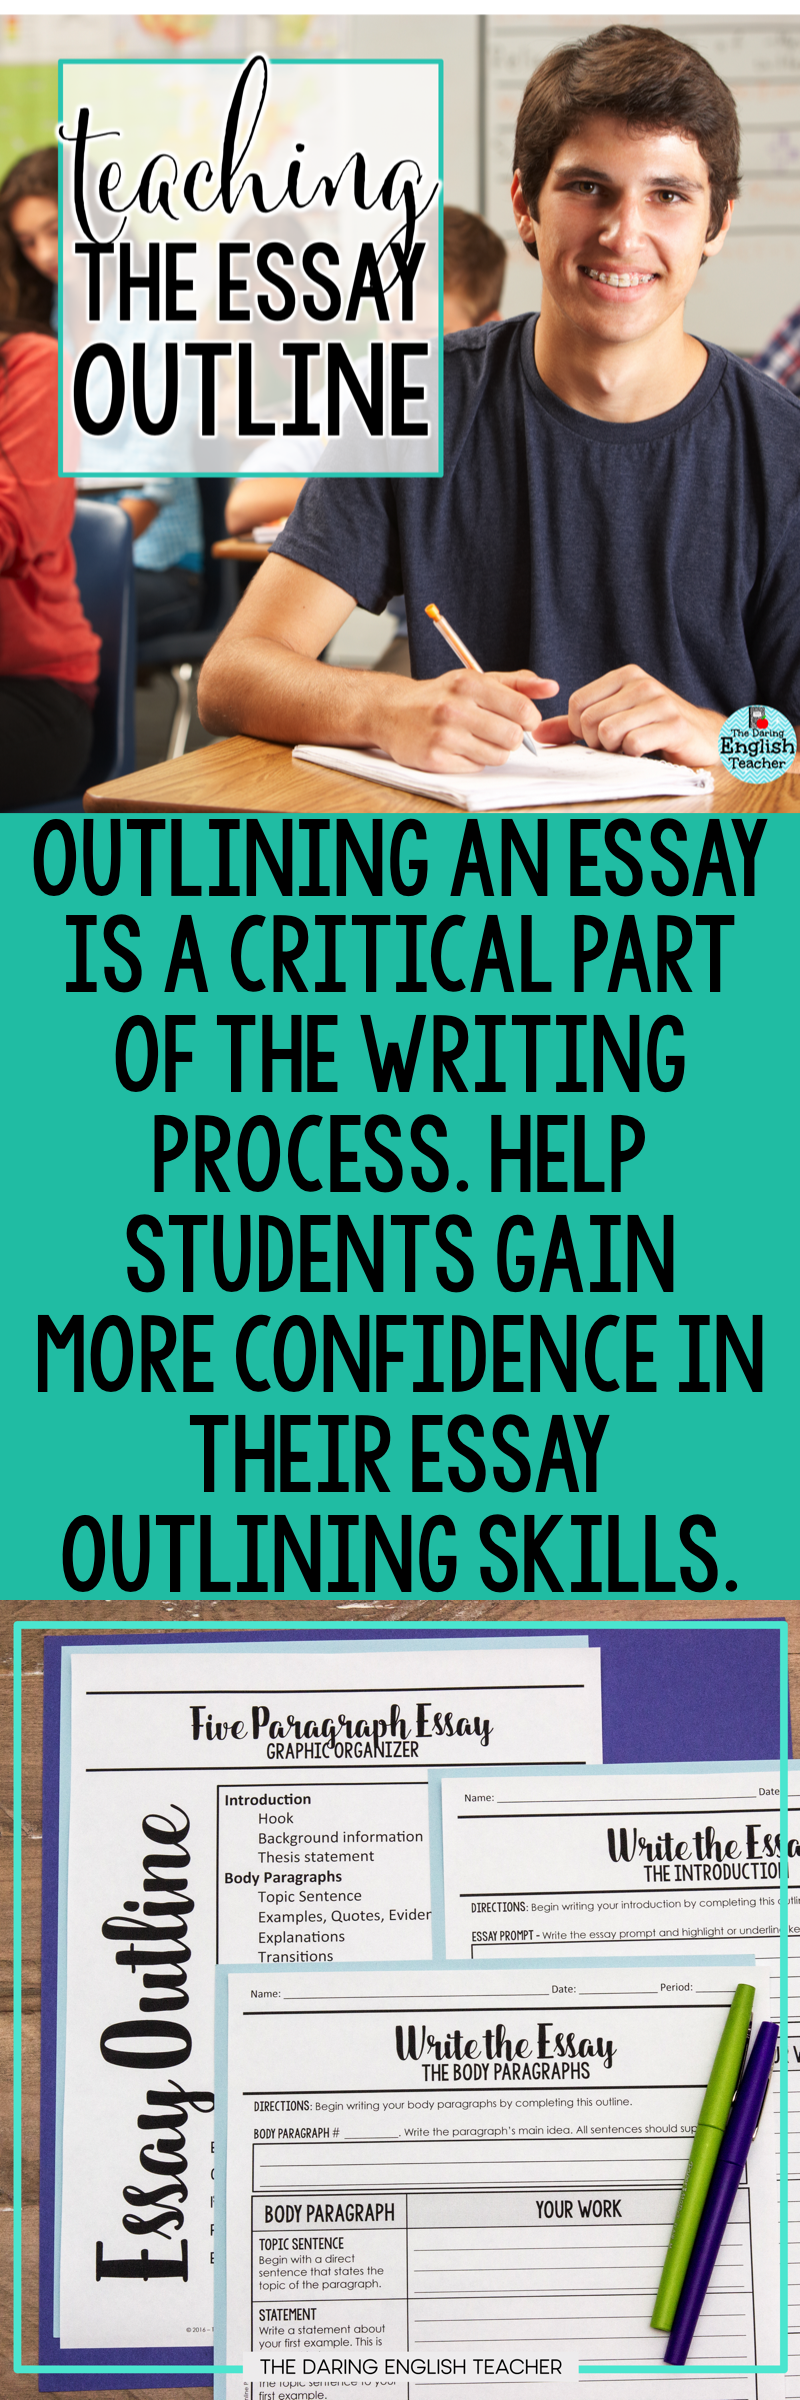 What Is A Thesis Of An Essay Teach Students How To Outline Their Essays High School Writing Middle School  Writing Essay On Science And Society also Examples Of A Thesis Statement In An Essay Teach Students How To Outline Their Essays High School Writing  Business Studies Essays